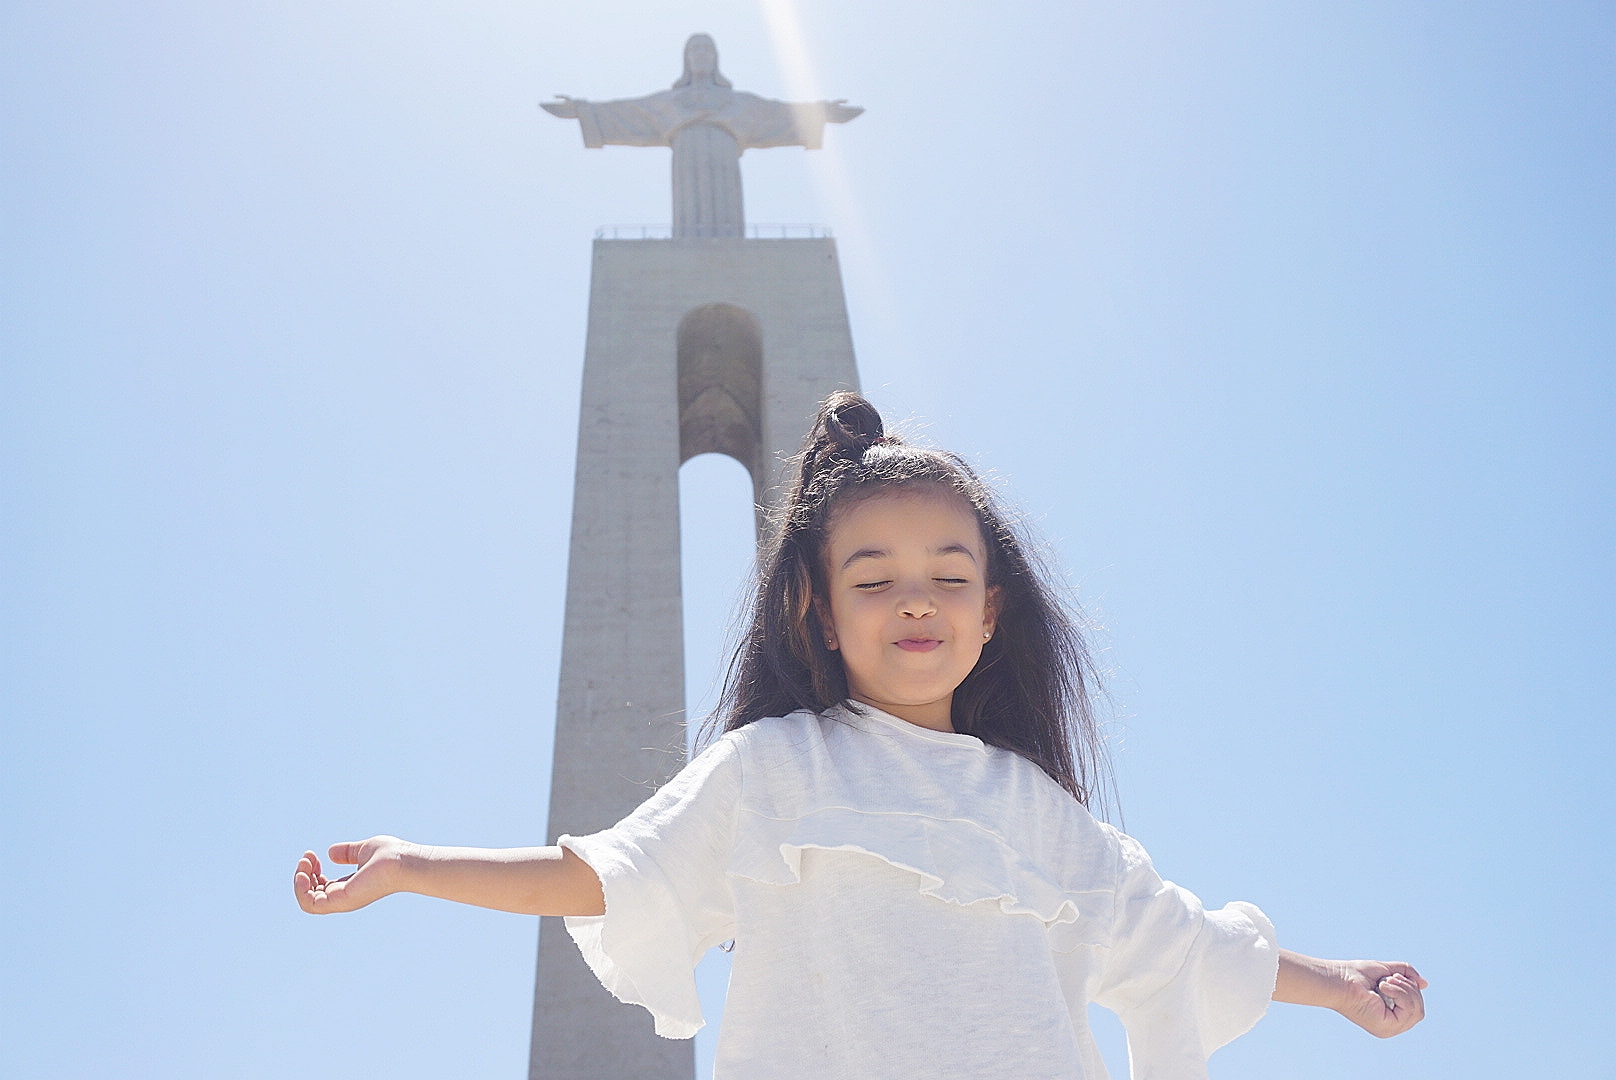 It´s Gorgeous - The Cristo Rei statue in Lisbon is one of the most iconic monuments in Portugal(same monument in Rio de Janeiro).Christ the redeemer a Catholic monument is looking after the portuguese citizens.For the full panoramic views the best choice is terrace bars and downtown street views with the popular portuguese tile walls that will make your instagram feed pop ;) as well as the colourful buildings. The Golden Gate bridge and the river Tagus are the main views from the city, no matter where you are they are there to be seen.This views are unreal